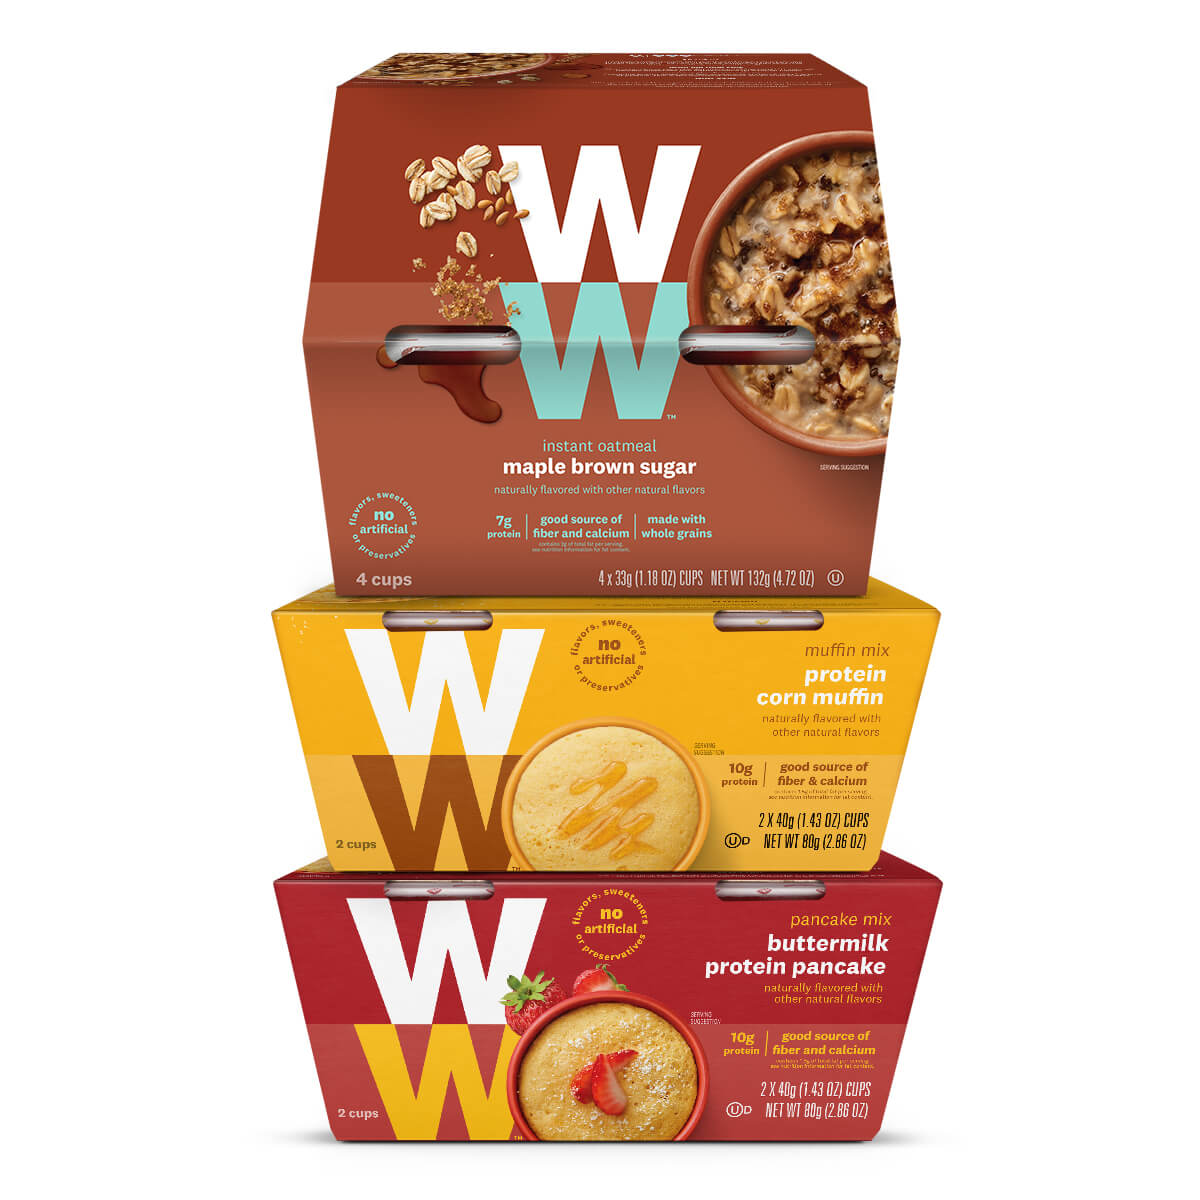 Breakfast Trio Variety Pack, front of boxes, 1 box of maple brown sugar oatmeal, 1 box of protein corn muffins, 1 box of buttermilk protein pancakes